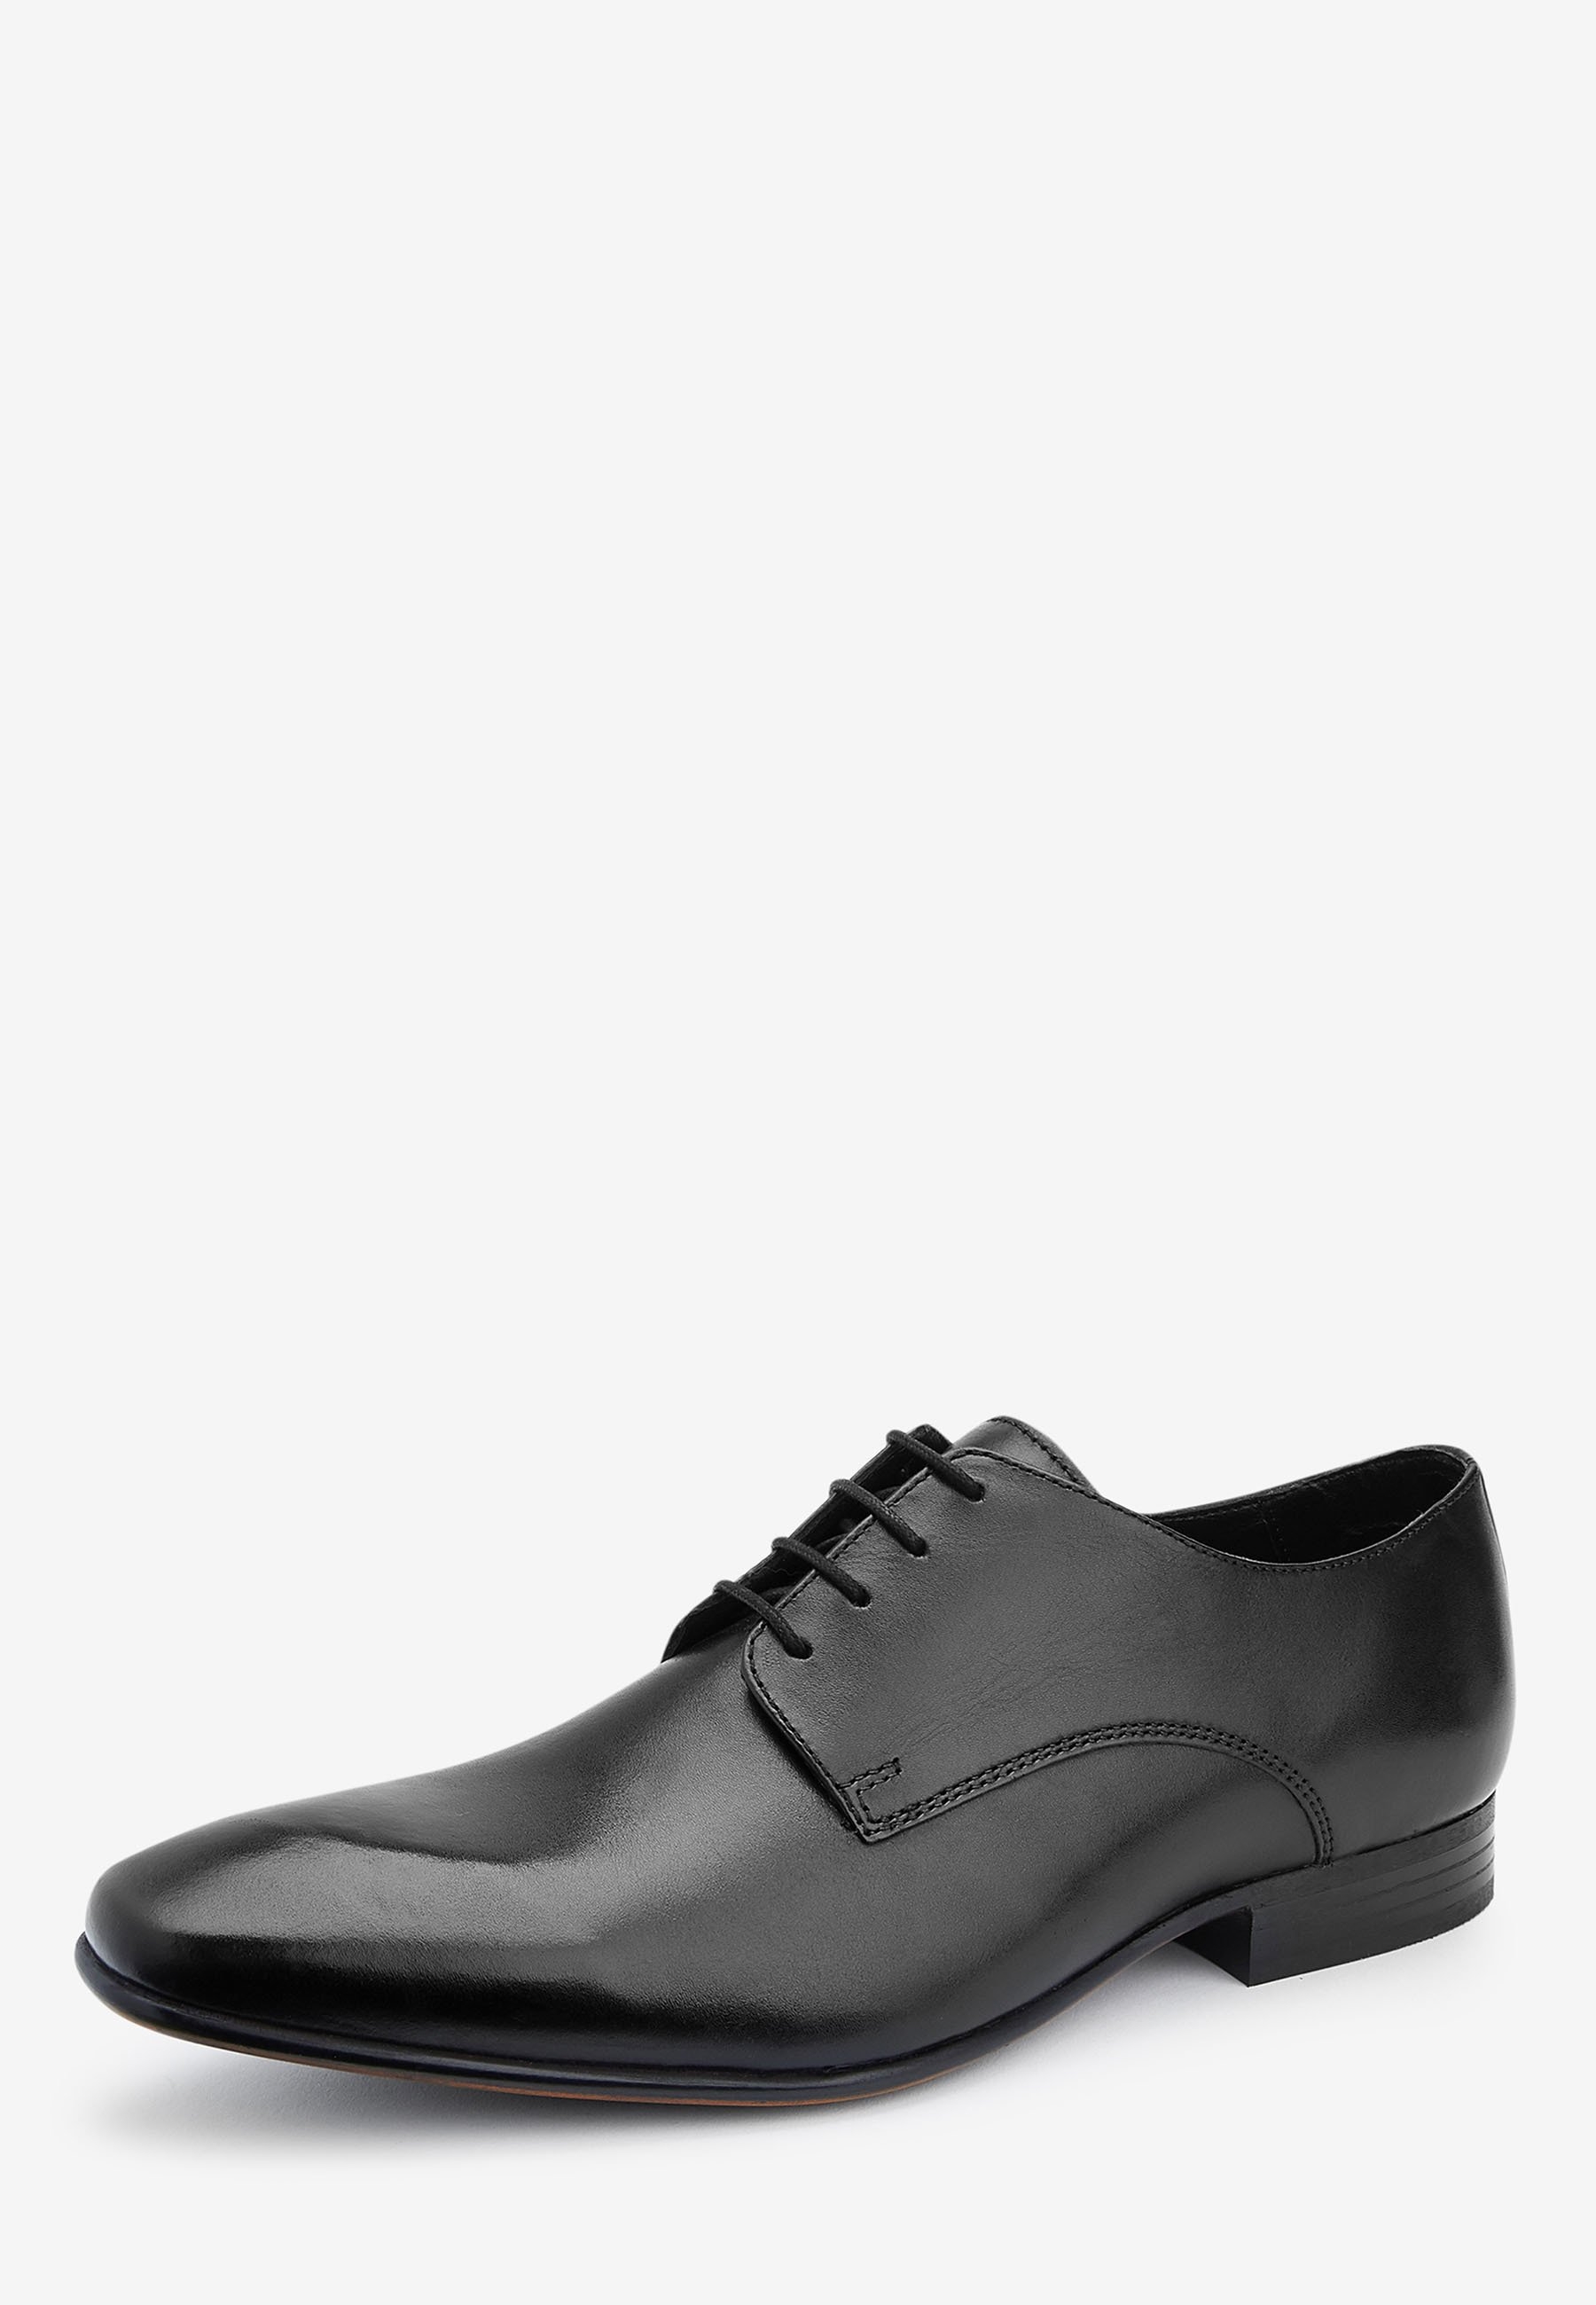 Next Tan Derby Shoes - Business Sko Black